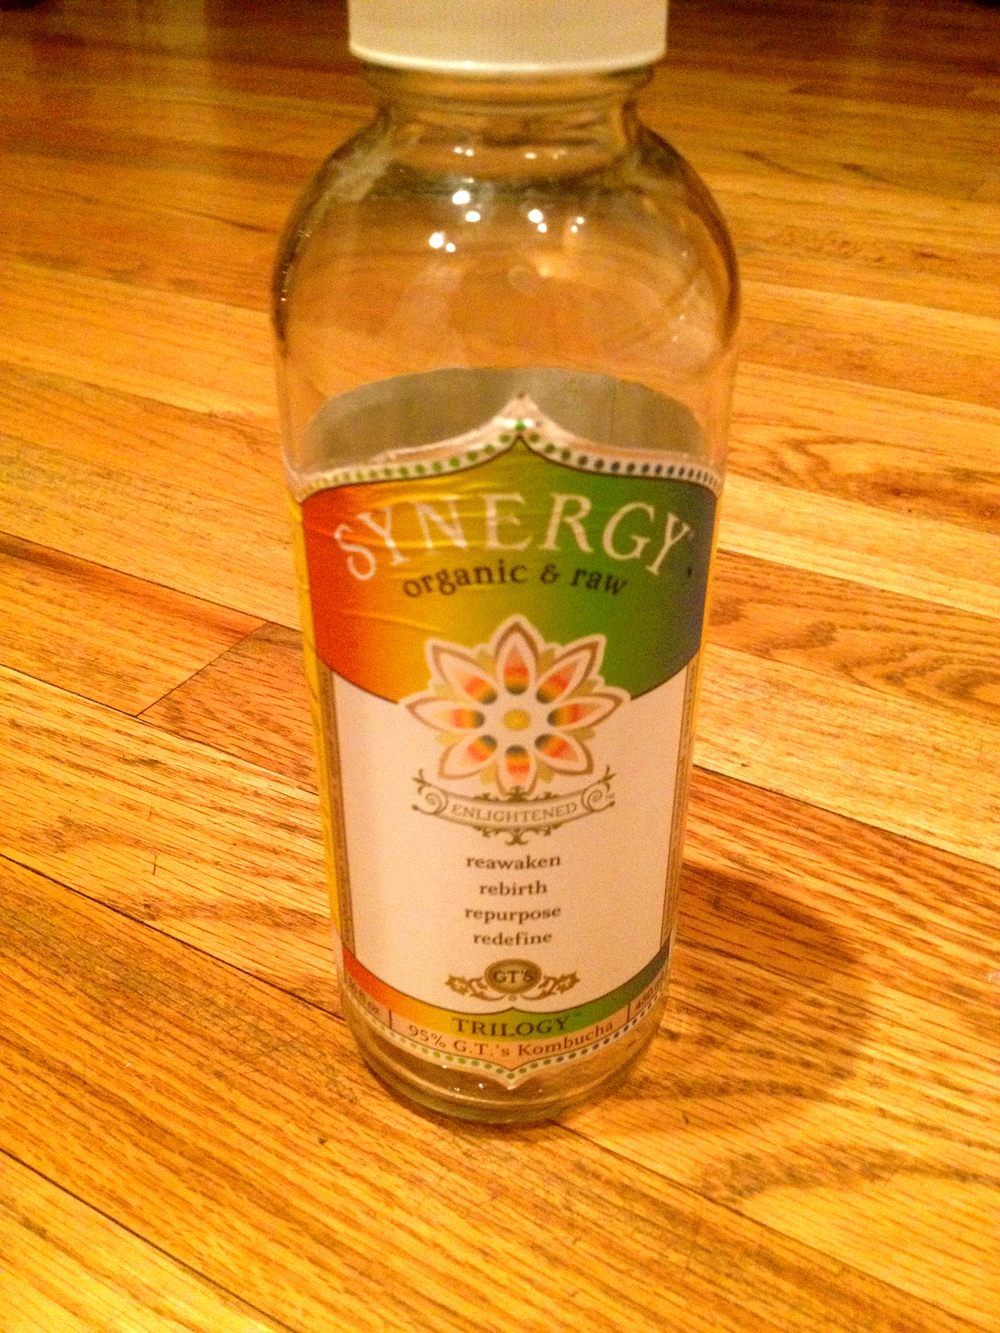 My go-to Kombucha brand is GT. I've tried every other brand out there, and nothing compares to the sweet/spicy/pungent fizz of the Synergy drinks.